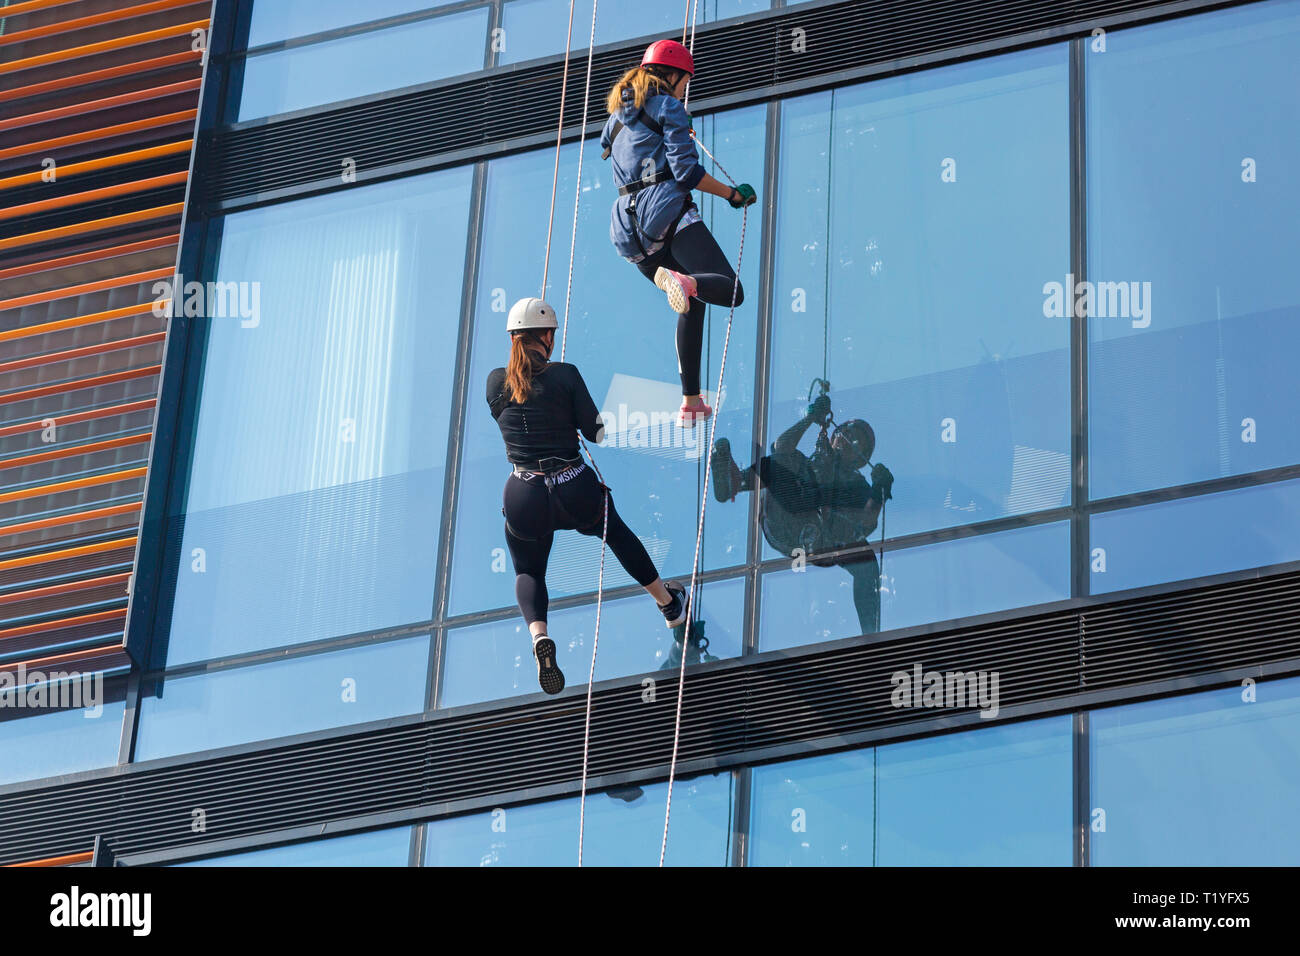 Bournemouth, Dorset, UK. 29th Mar, 2019. Staff working for telecommunications provider 4Com abseil down their new office building at One Lansdowne Plaza in Bournemouth which is 100ft high. They are raising funds for Hope Housing and Hope AOK Rucksack Appeal who provide support to homeless in Bournemouth. A lovely warm sunny day for the descent! Two women abseil down. Credit: Carolyn Jenkins/Alamy Live News - Stock Image